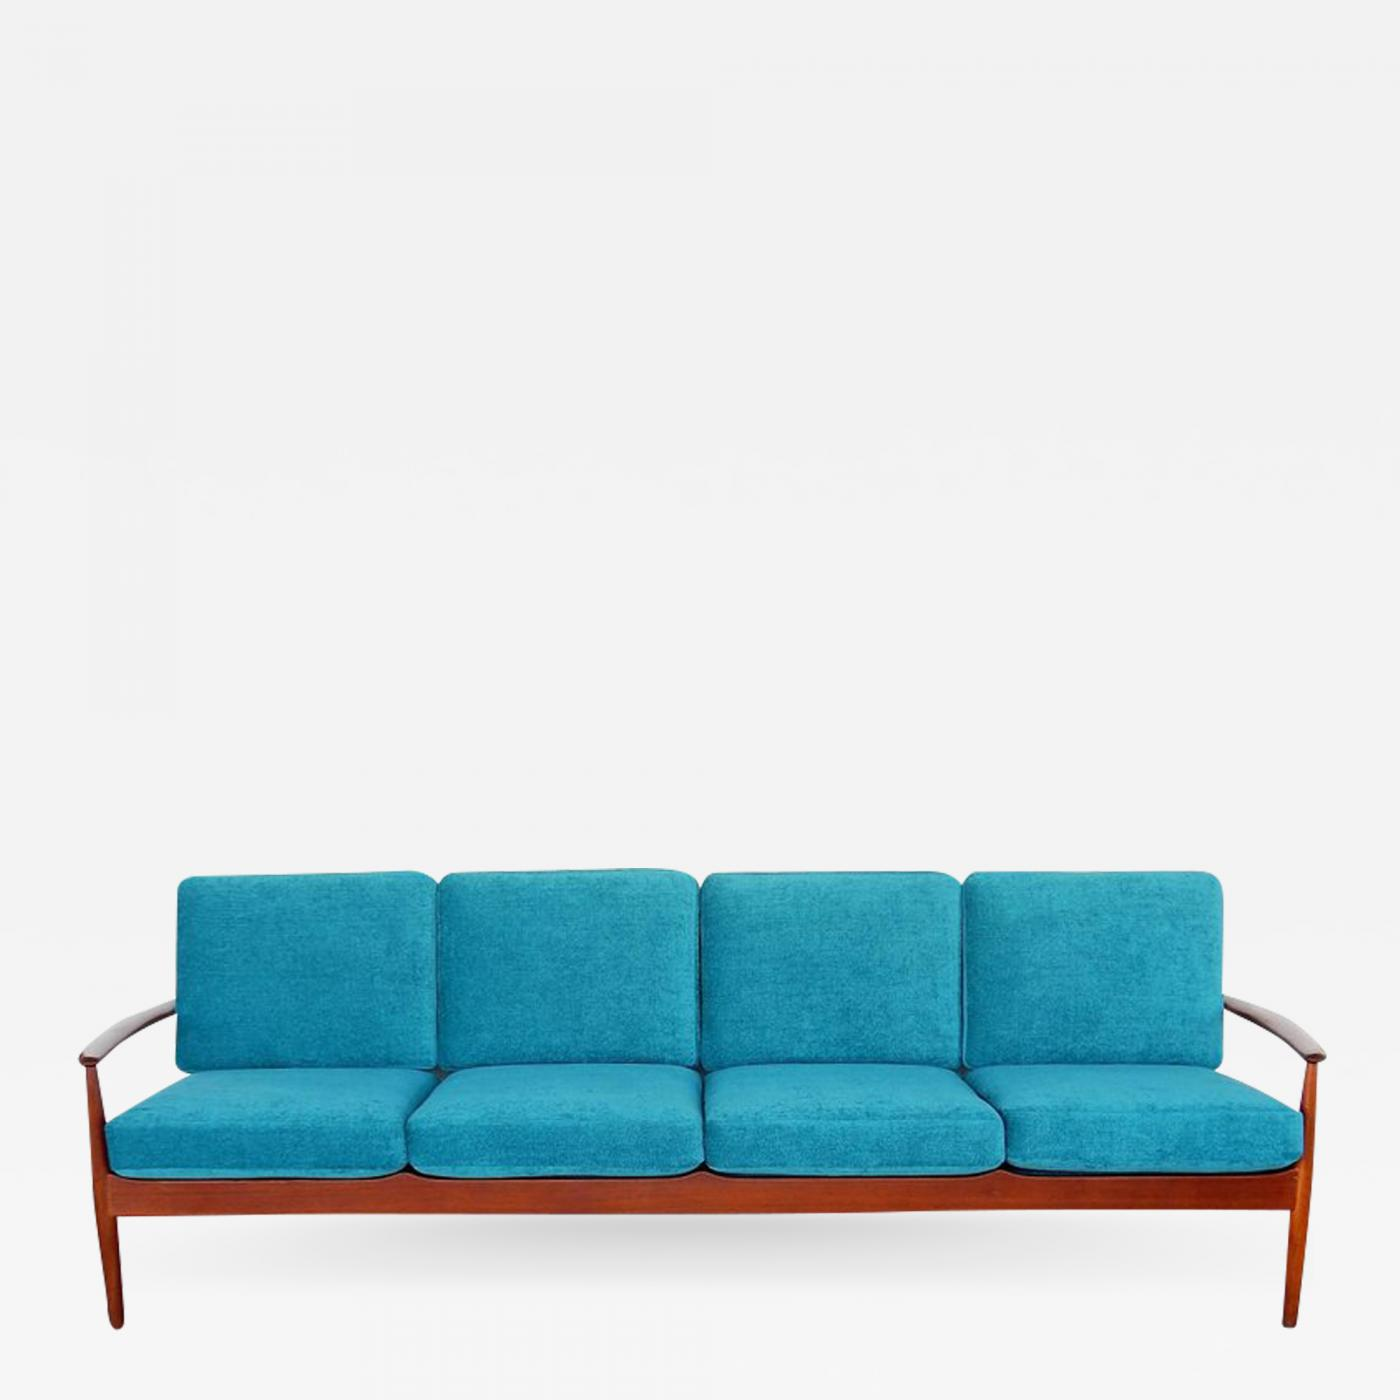 Grete Jalk - Danish Modern Long Teak Sofa by Grete Jalk